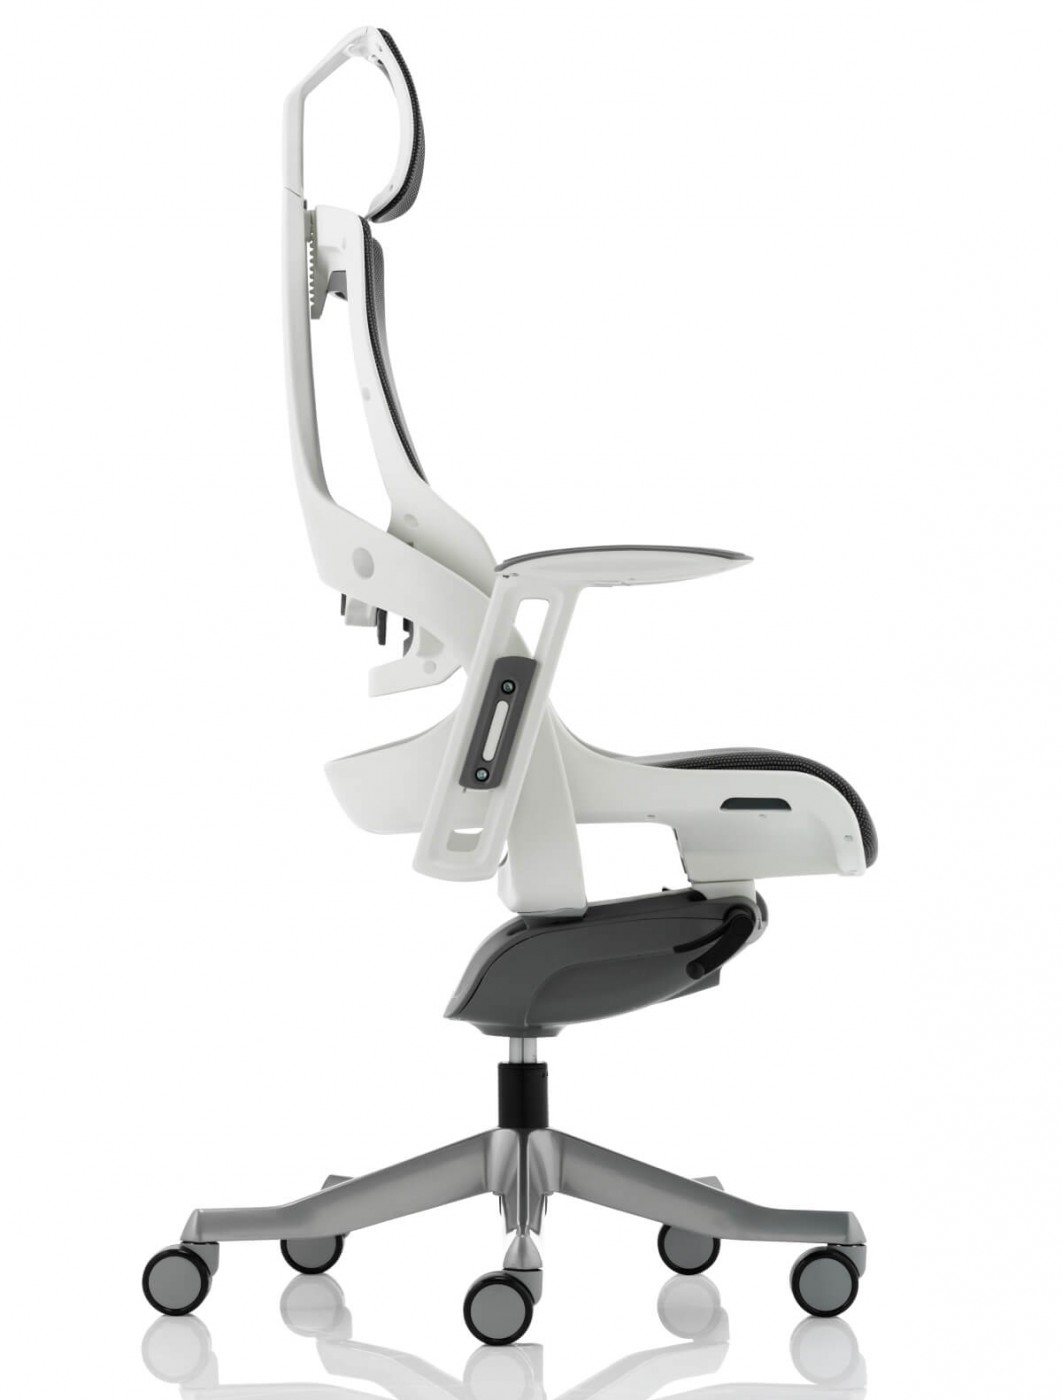 executive mesh office chair sciatic nerve cushion zure fabric with headrest kc0162 121 charcoal w enlarged view